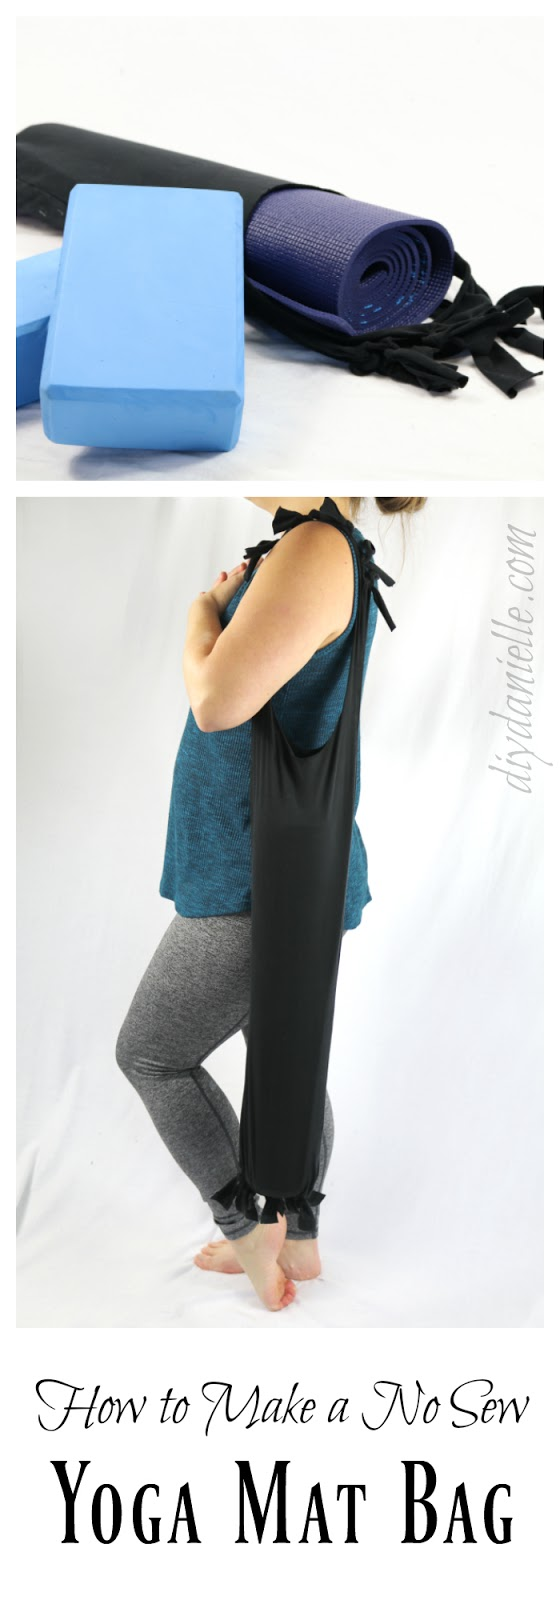 DIY Yoga Mat Bag: No Sew from Old Yoga Pants